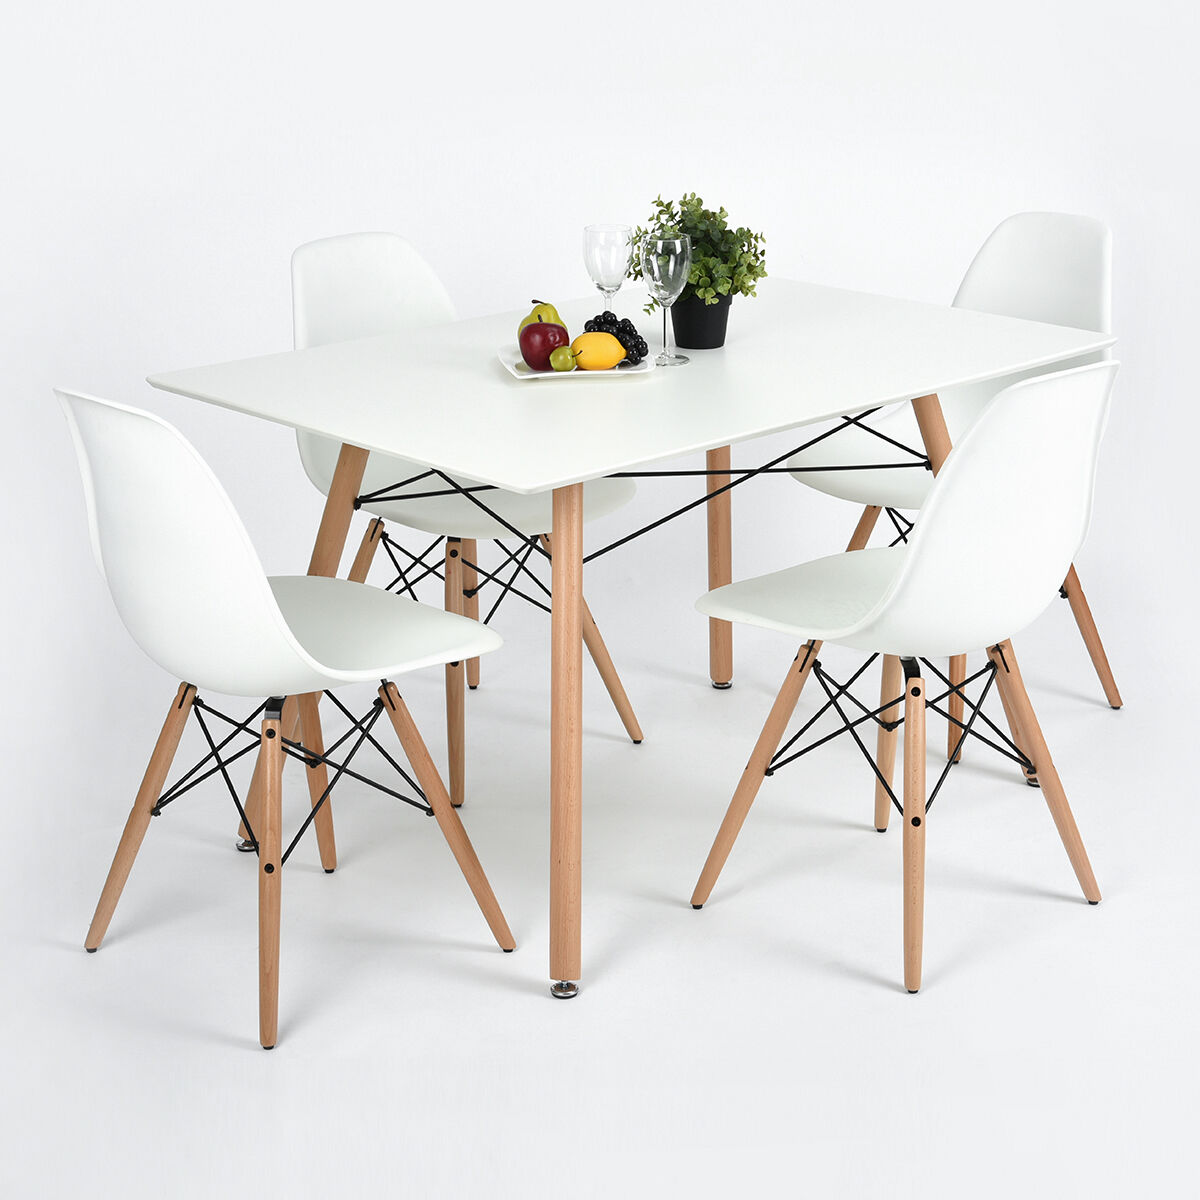 reputable site 6b65e 8f7ba Details about 4 X White Designer Dining Chairs and table Set Matte Wooden  Leg Table Chairs